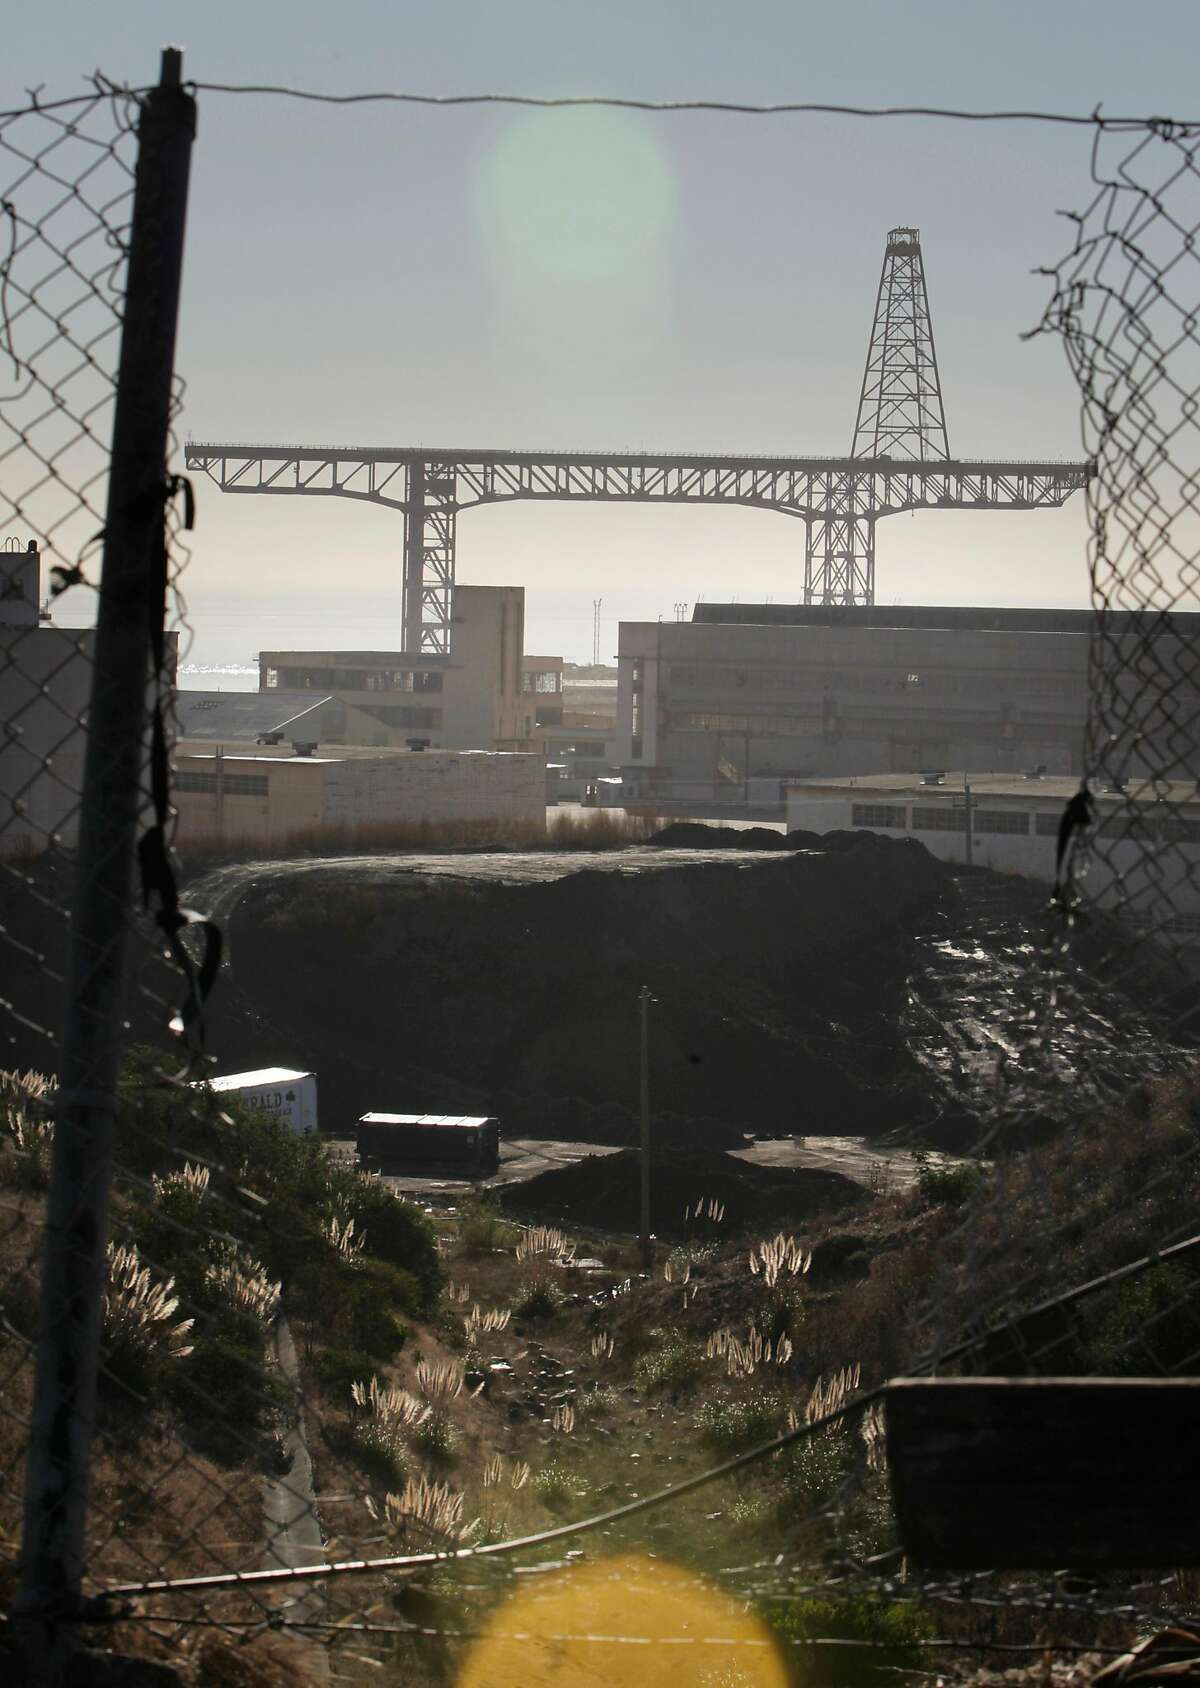 The crane and part of the former Hunters Point Naval Shipyard is seen through a hole in a fence on Friday, October 30, 2015 in San Francisco, Calif.